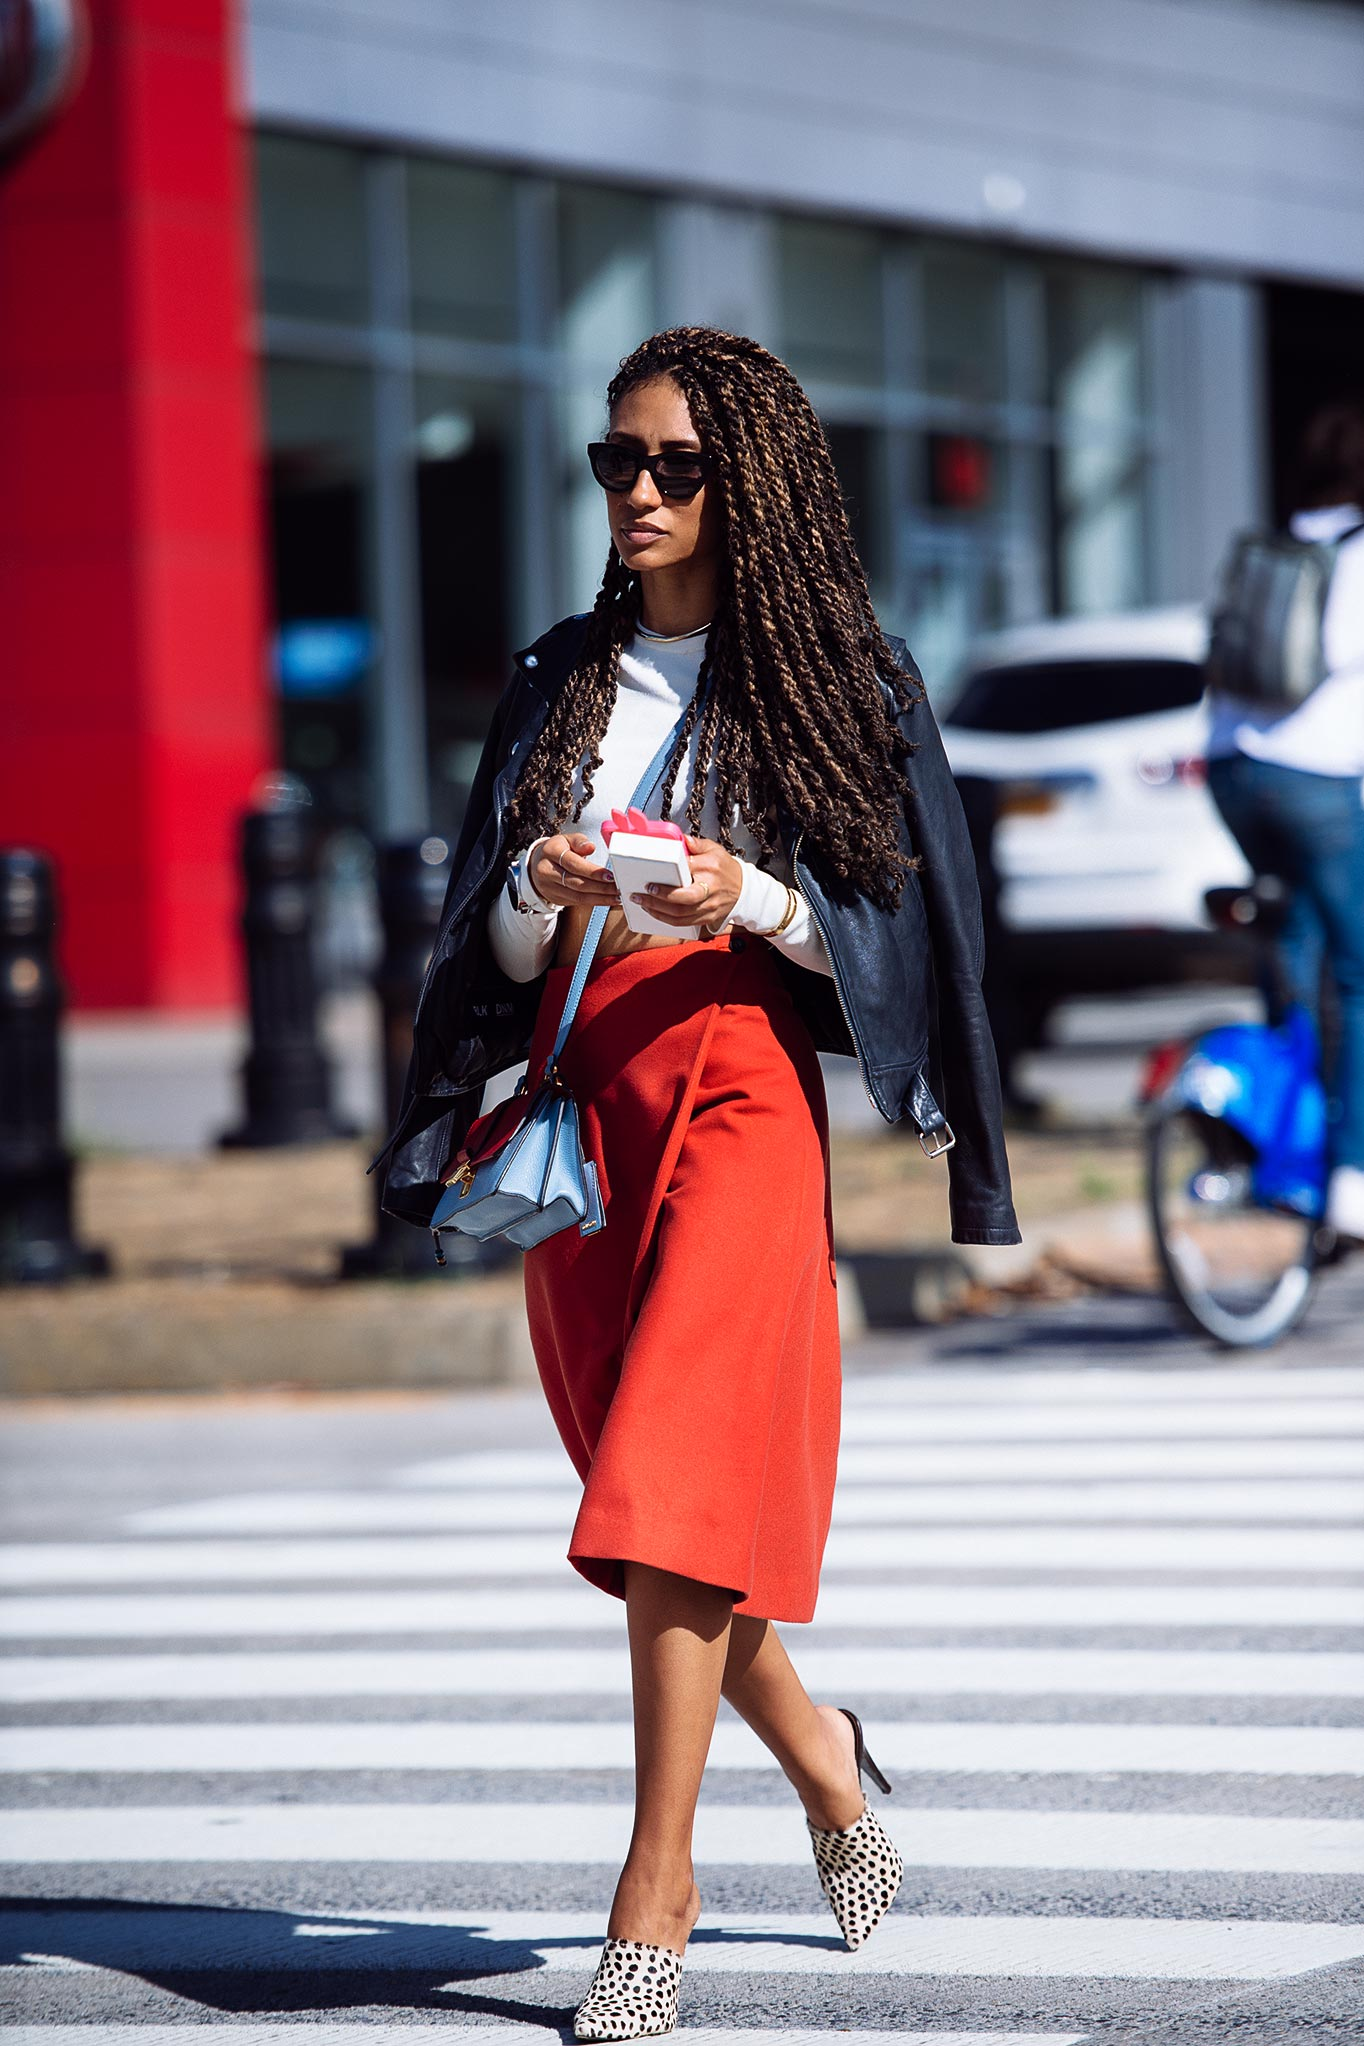 Elaine Welteroth at New York Fashion Week Spring/Summer 2016